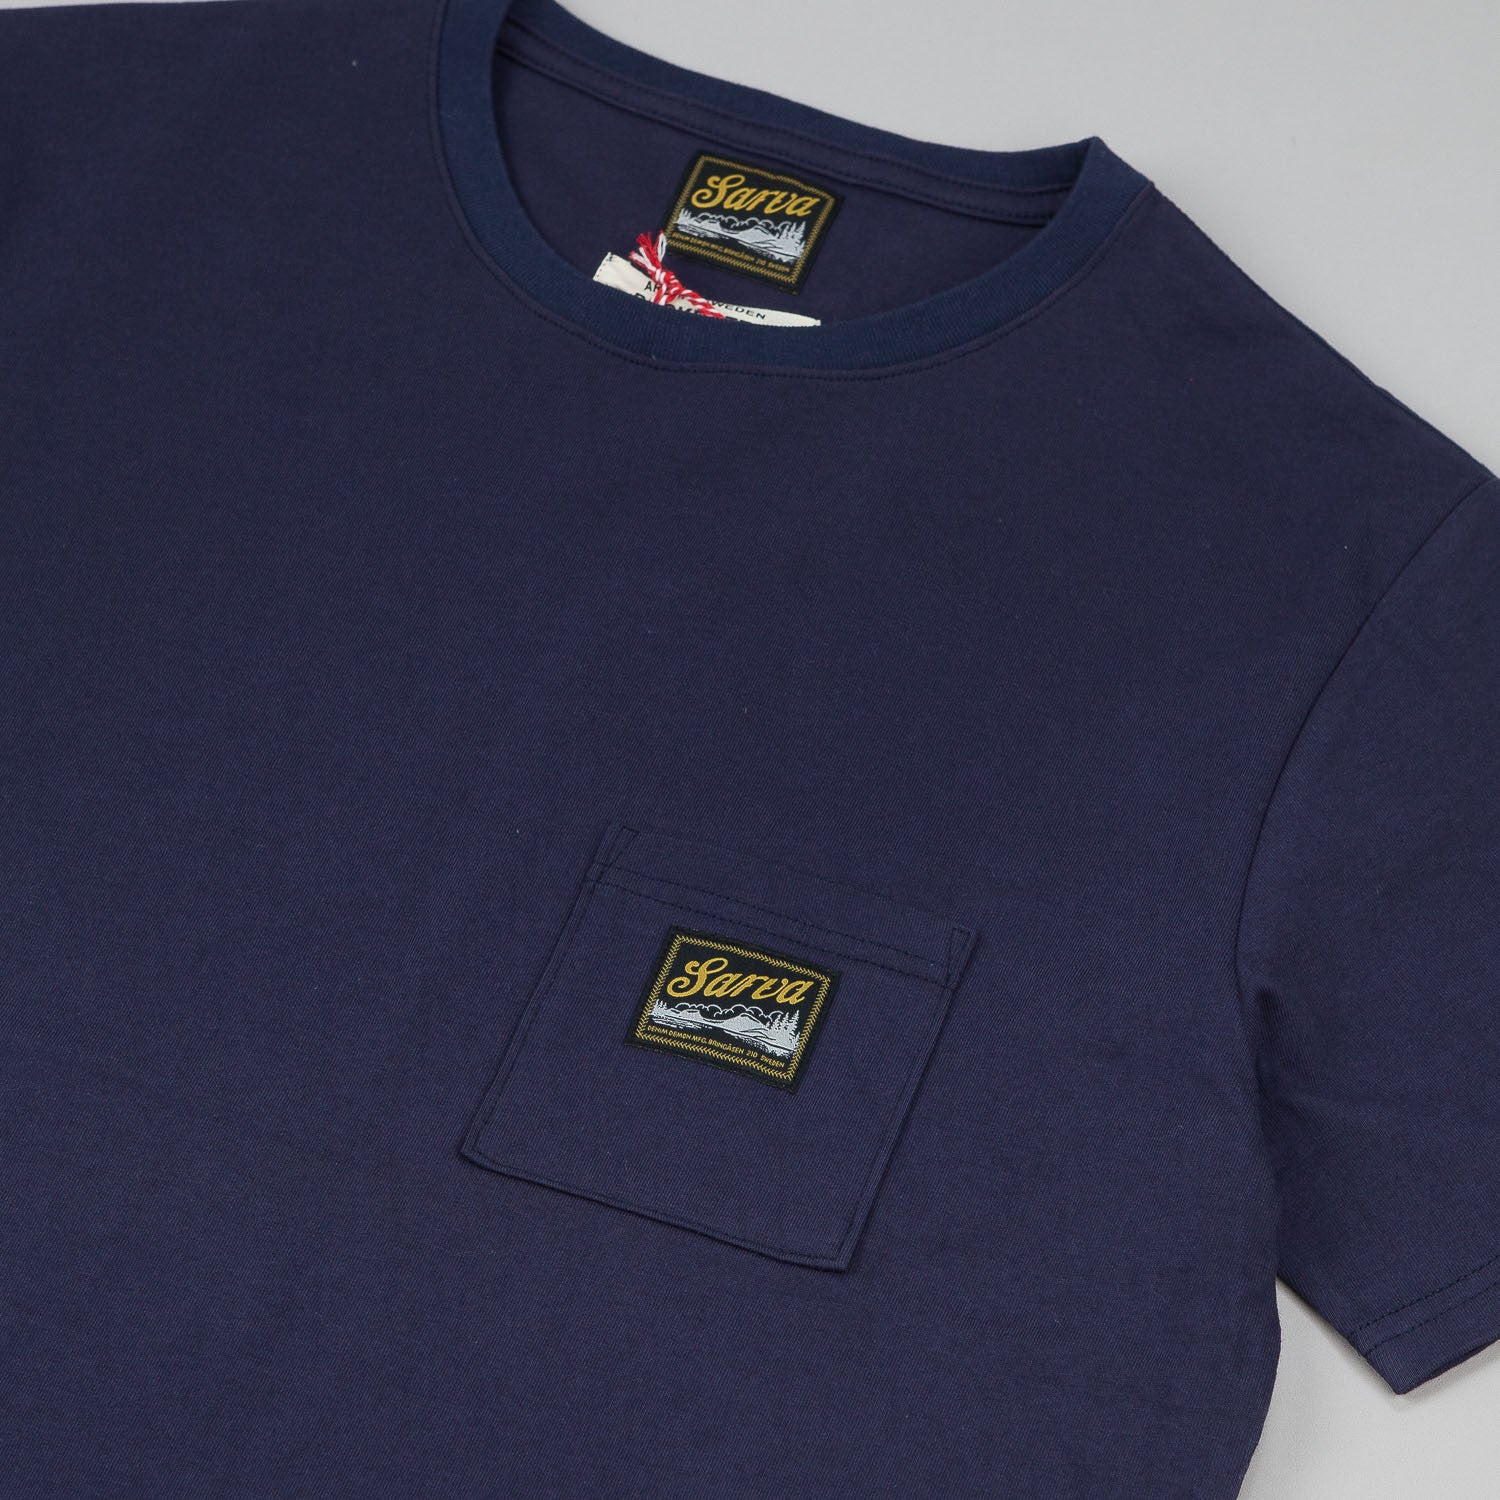 Sarva Pocket T-Shirt - Navy